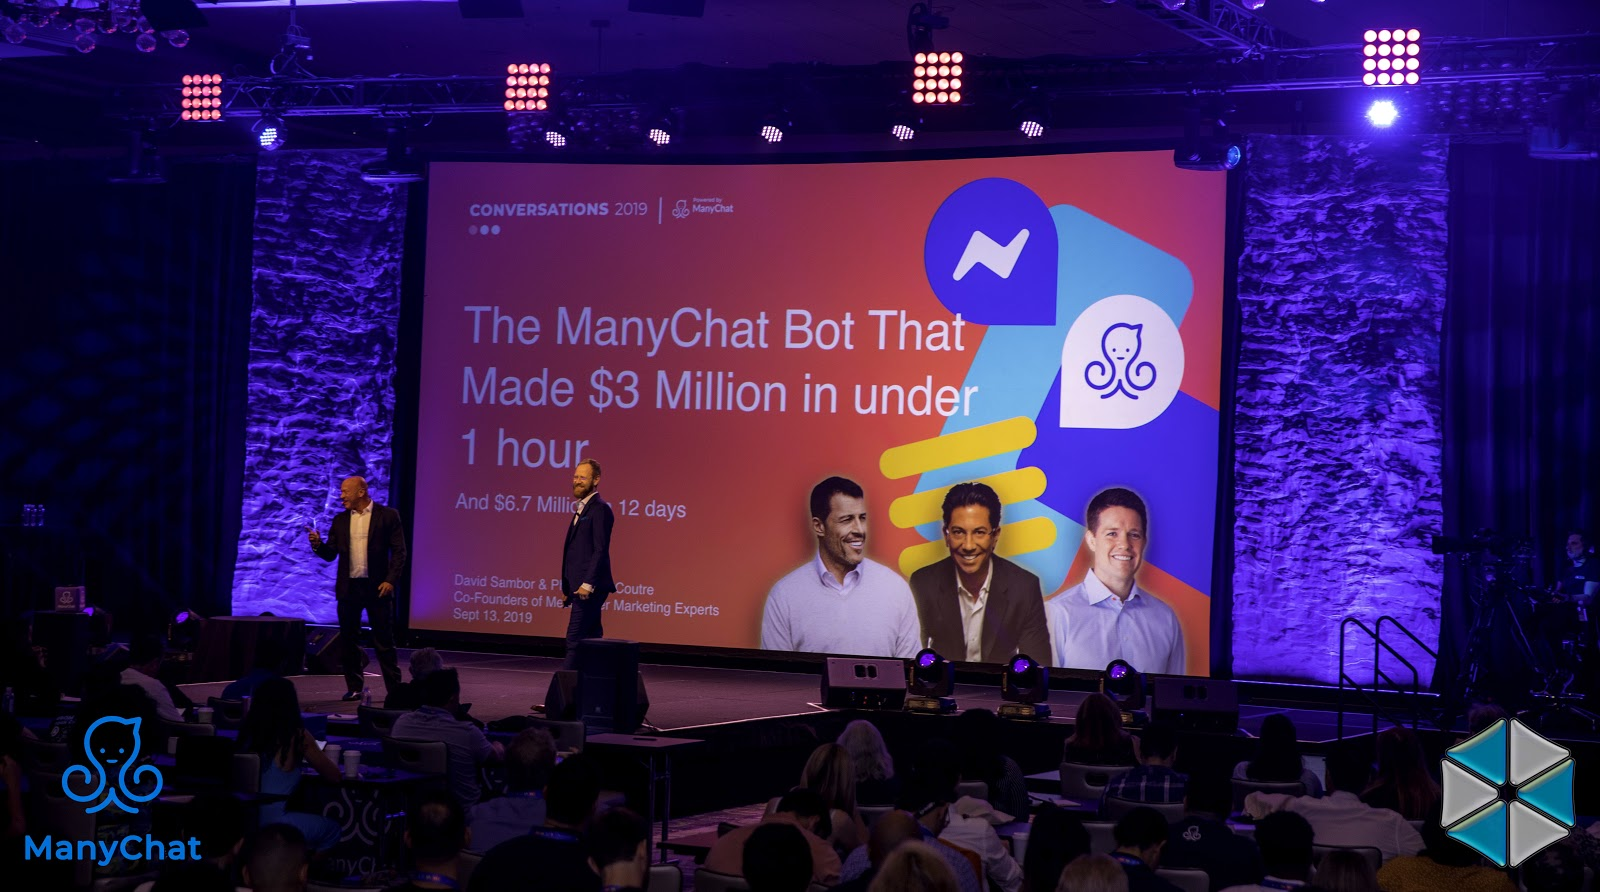 Tony Robbins Chatbot | Conversations 2019: Everything You Need To Know About Agency Day